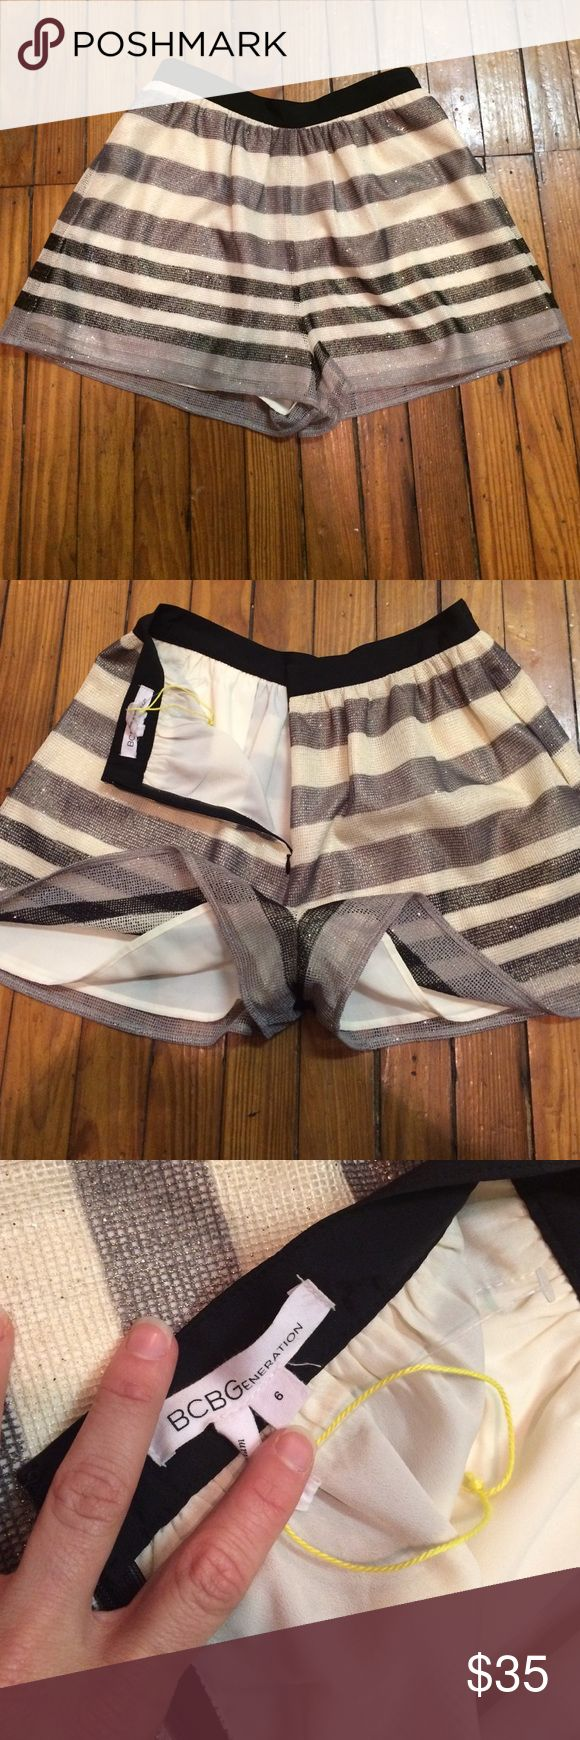 BCBG Dress shorts Zip up in back dress shorts, can dress up or down cream black grey with silver accents BCBGeneration Shorts